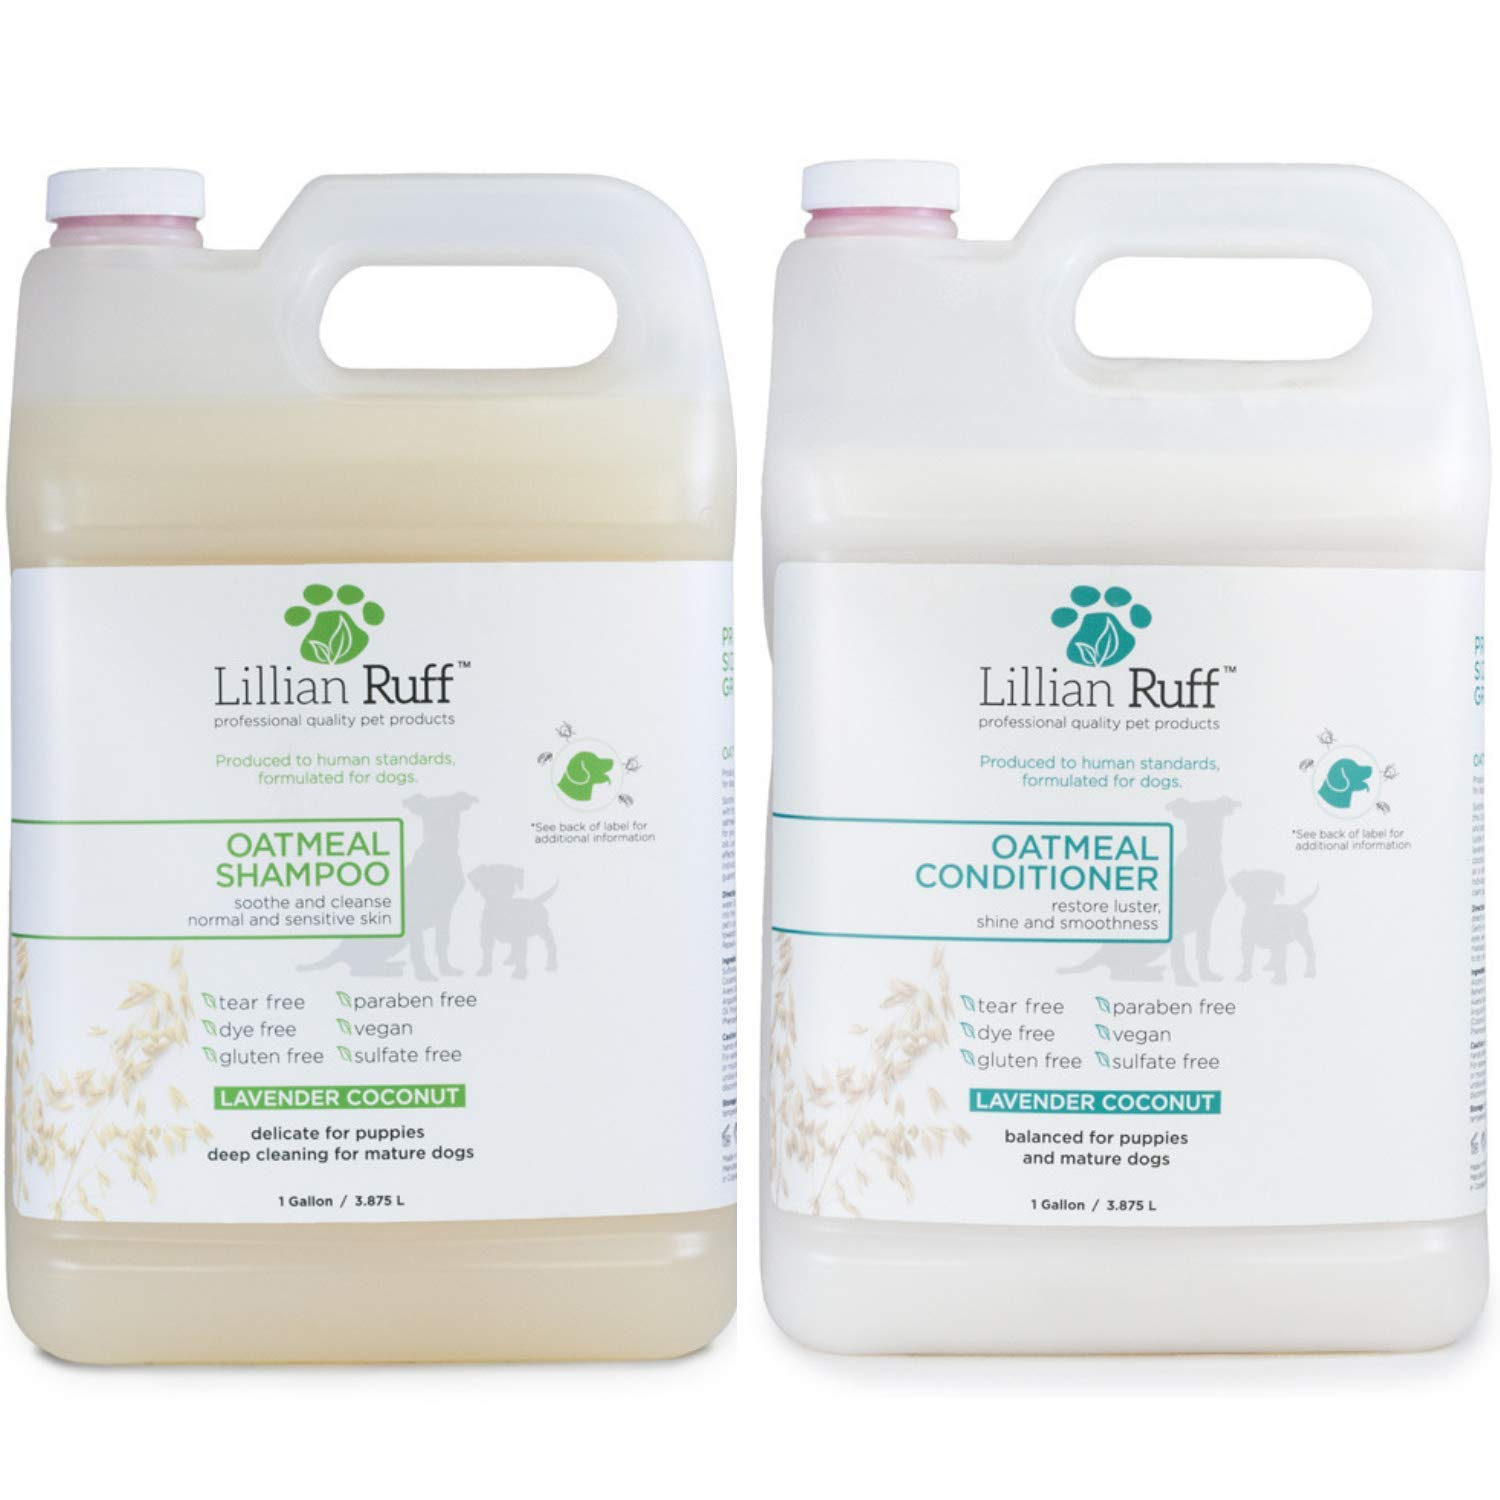 Lillian Ruff Oatmeal Dog Shampoo - Lavender Coconut Scent with Aloe - Deodorize and Soothe Dry Itchy Skin - Gentle Cleanser for Normal to Sensitive Skin (Shampoo & Conditioner Gallon Set) by Lillian Ruff